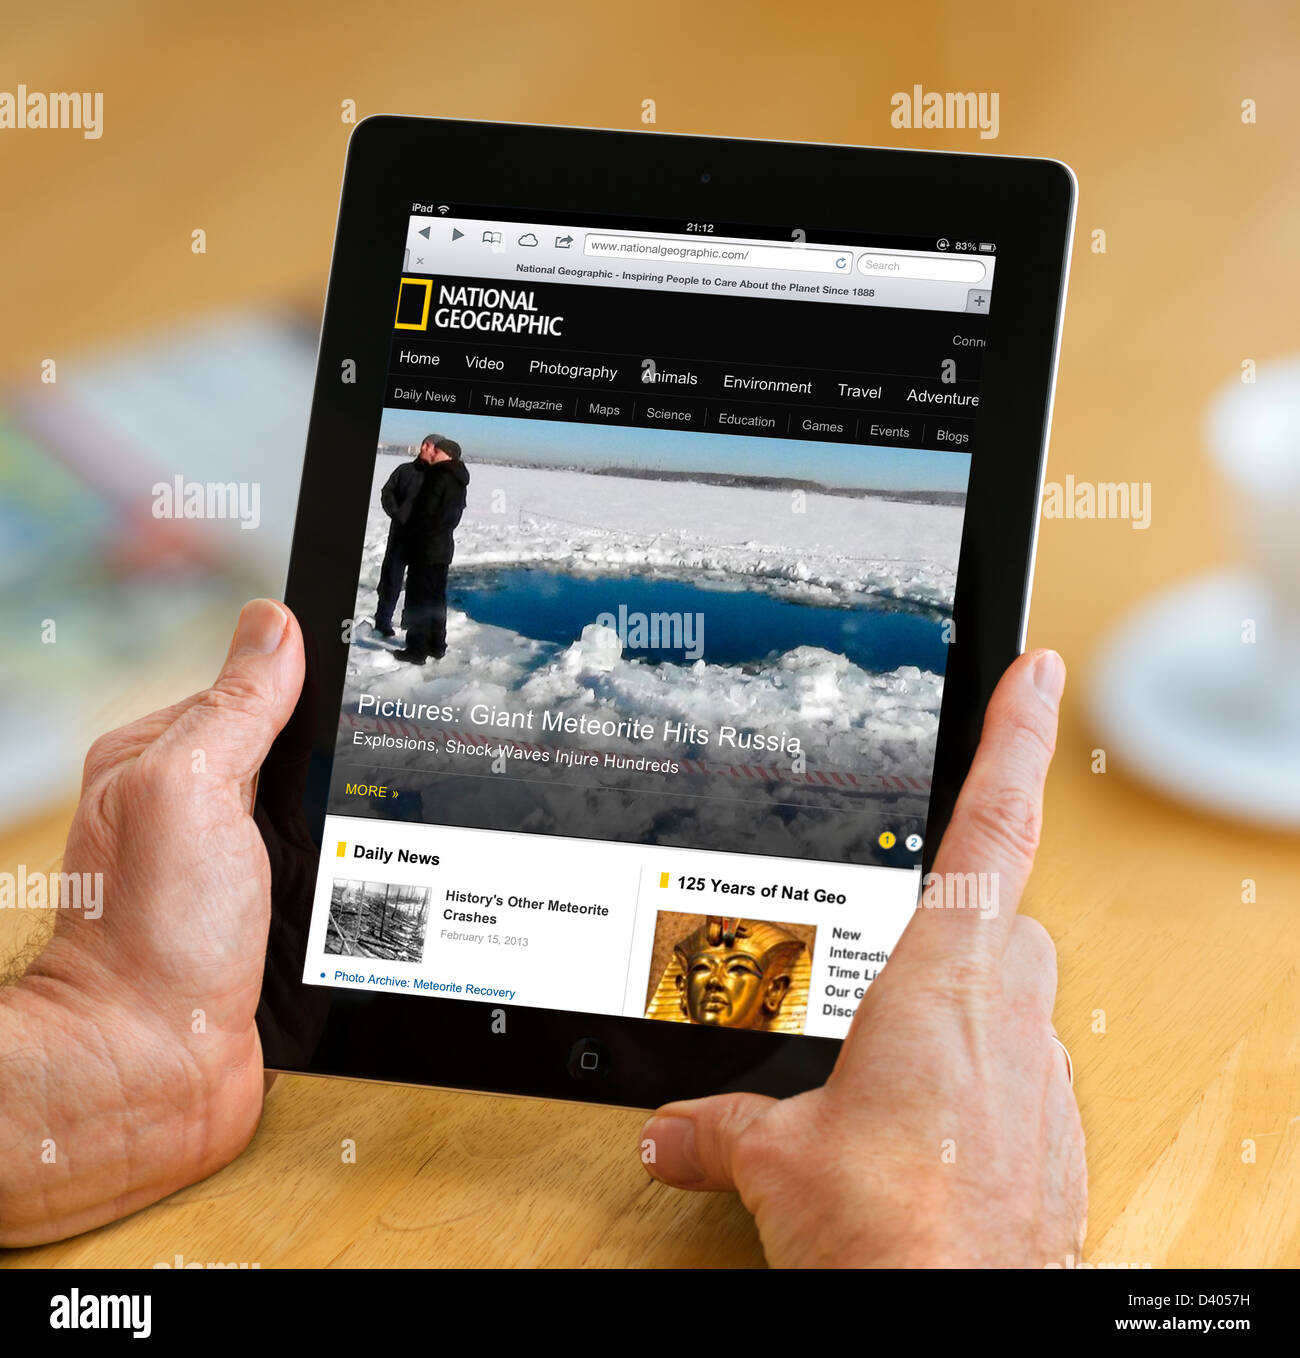 National Geographic website viewed on a 4th Generation iPad - Stock Image